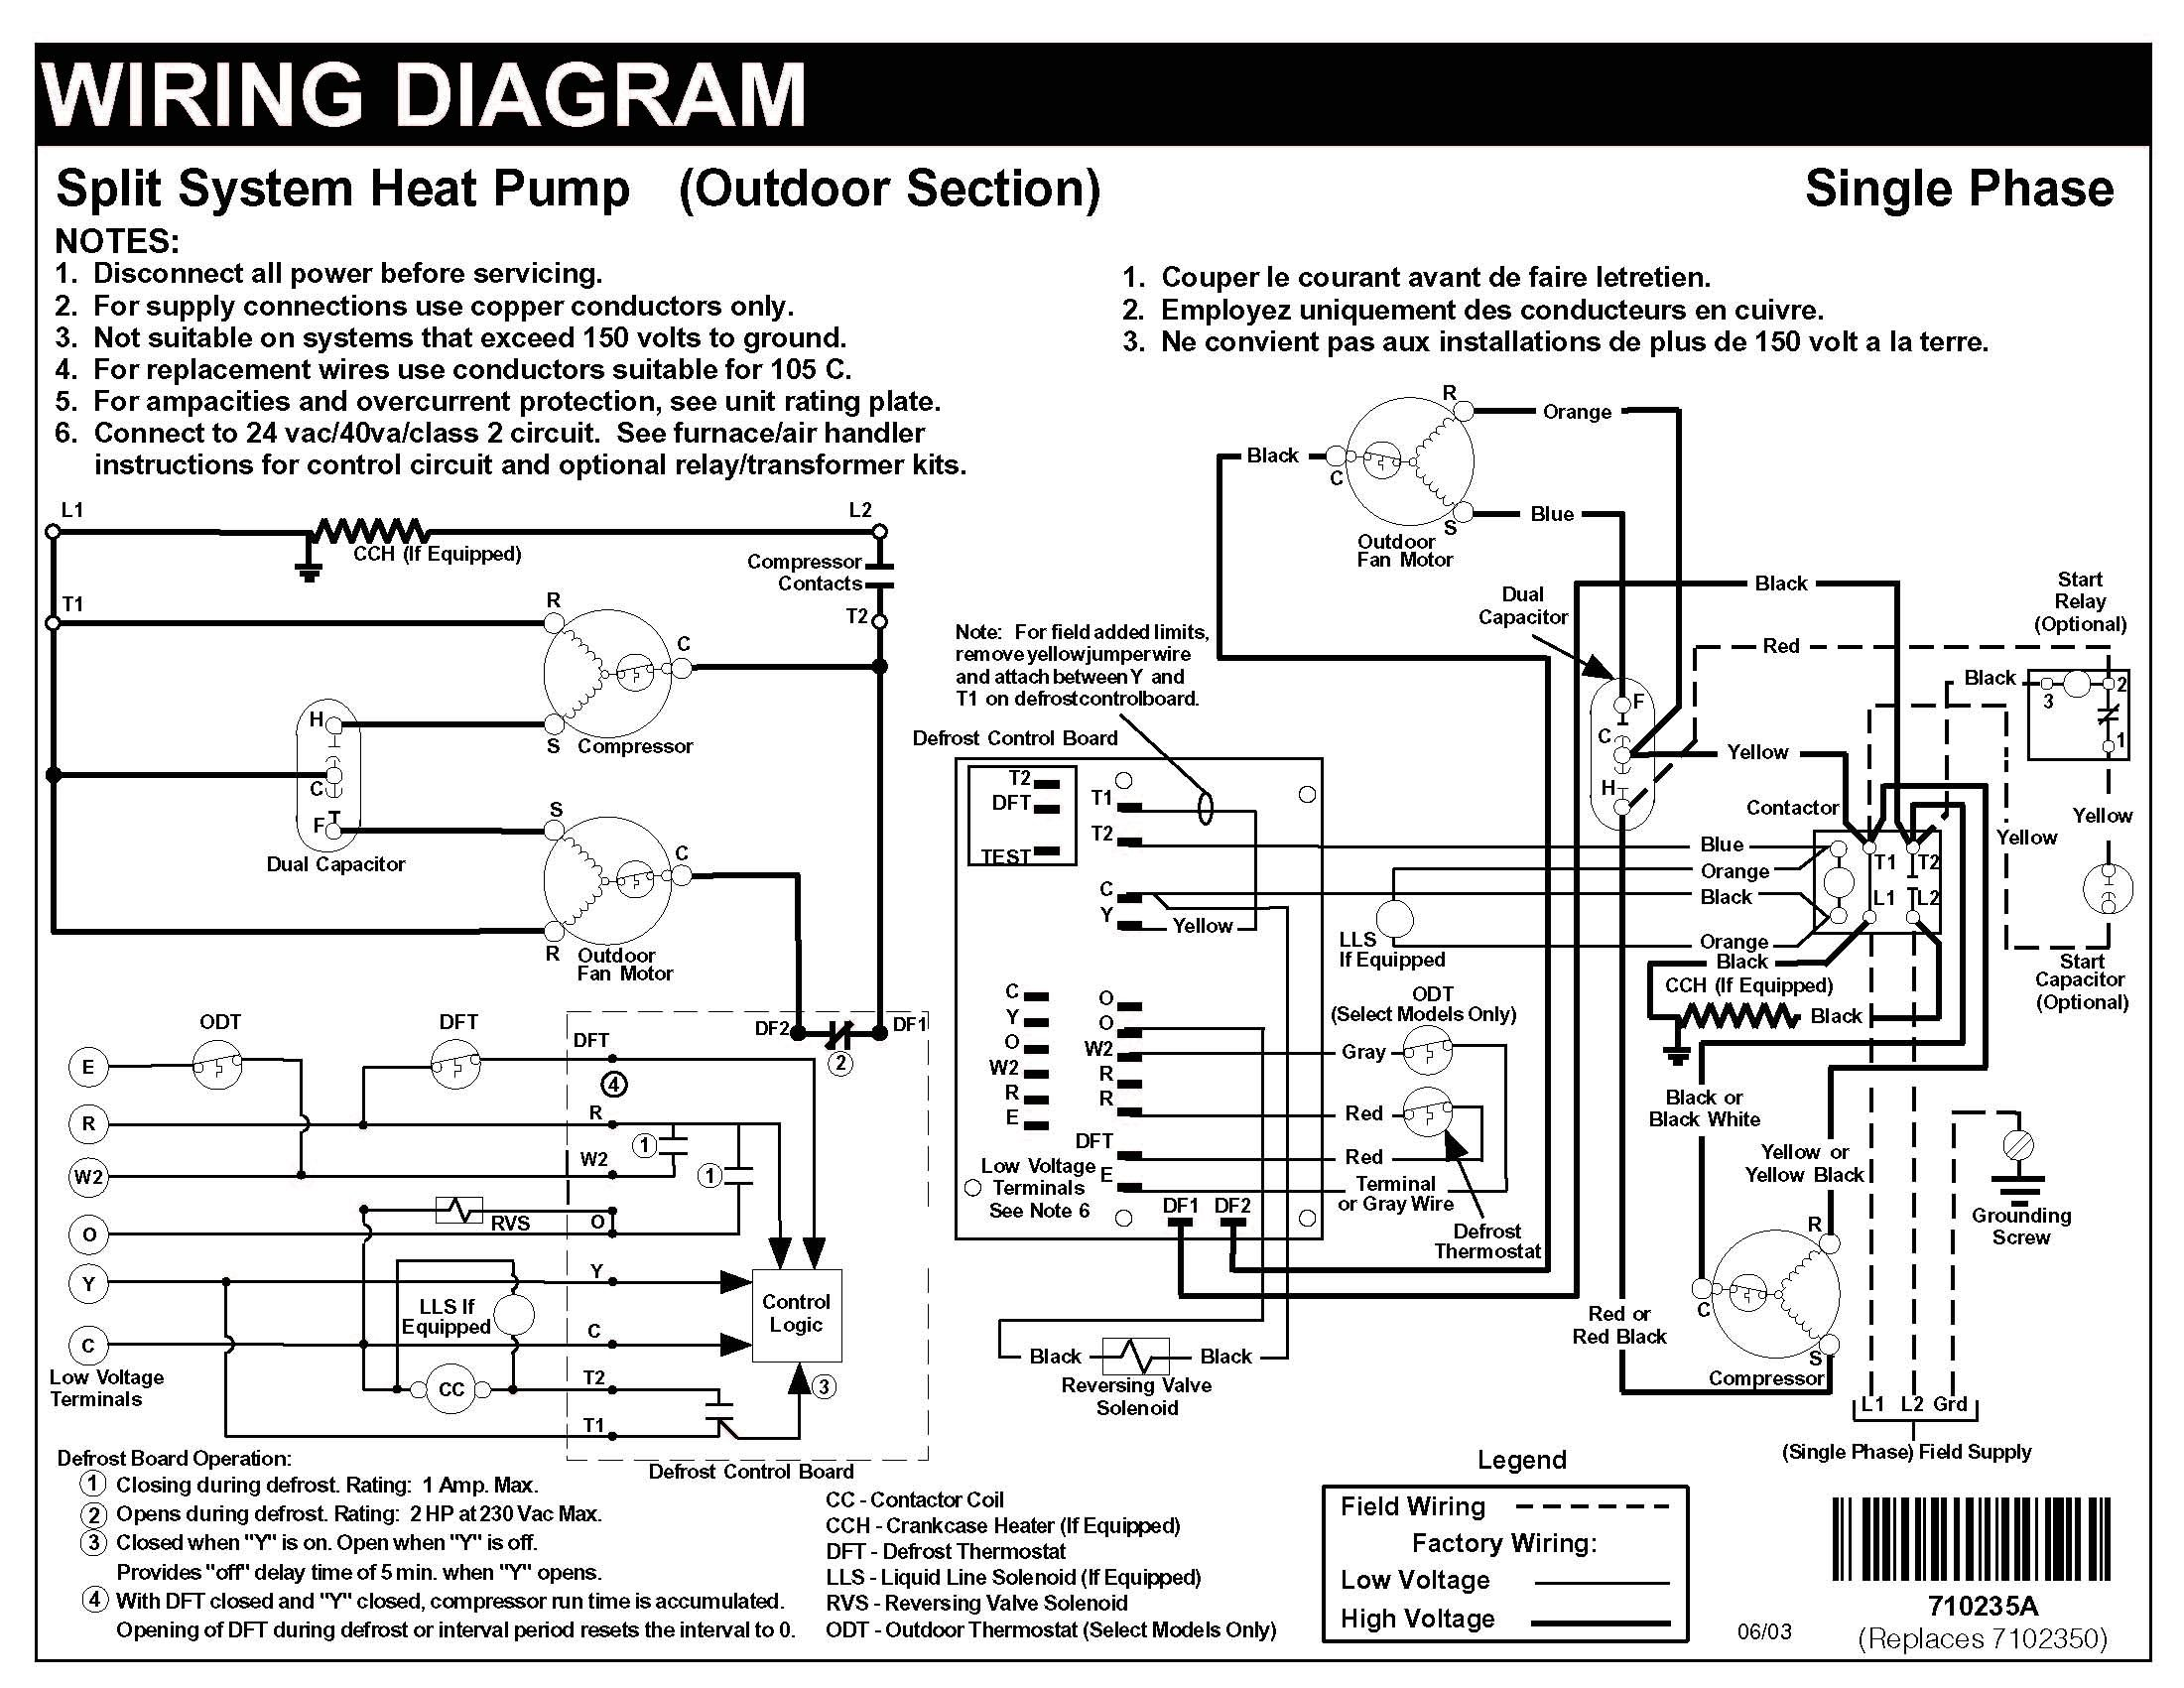 e08d295e6be2ee8be1bef44ac29add79 heat pumps residential heat pumps heat pump ratings lennox basic heat pump wiring diagram at panicattacktreatment.co